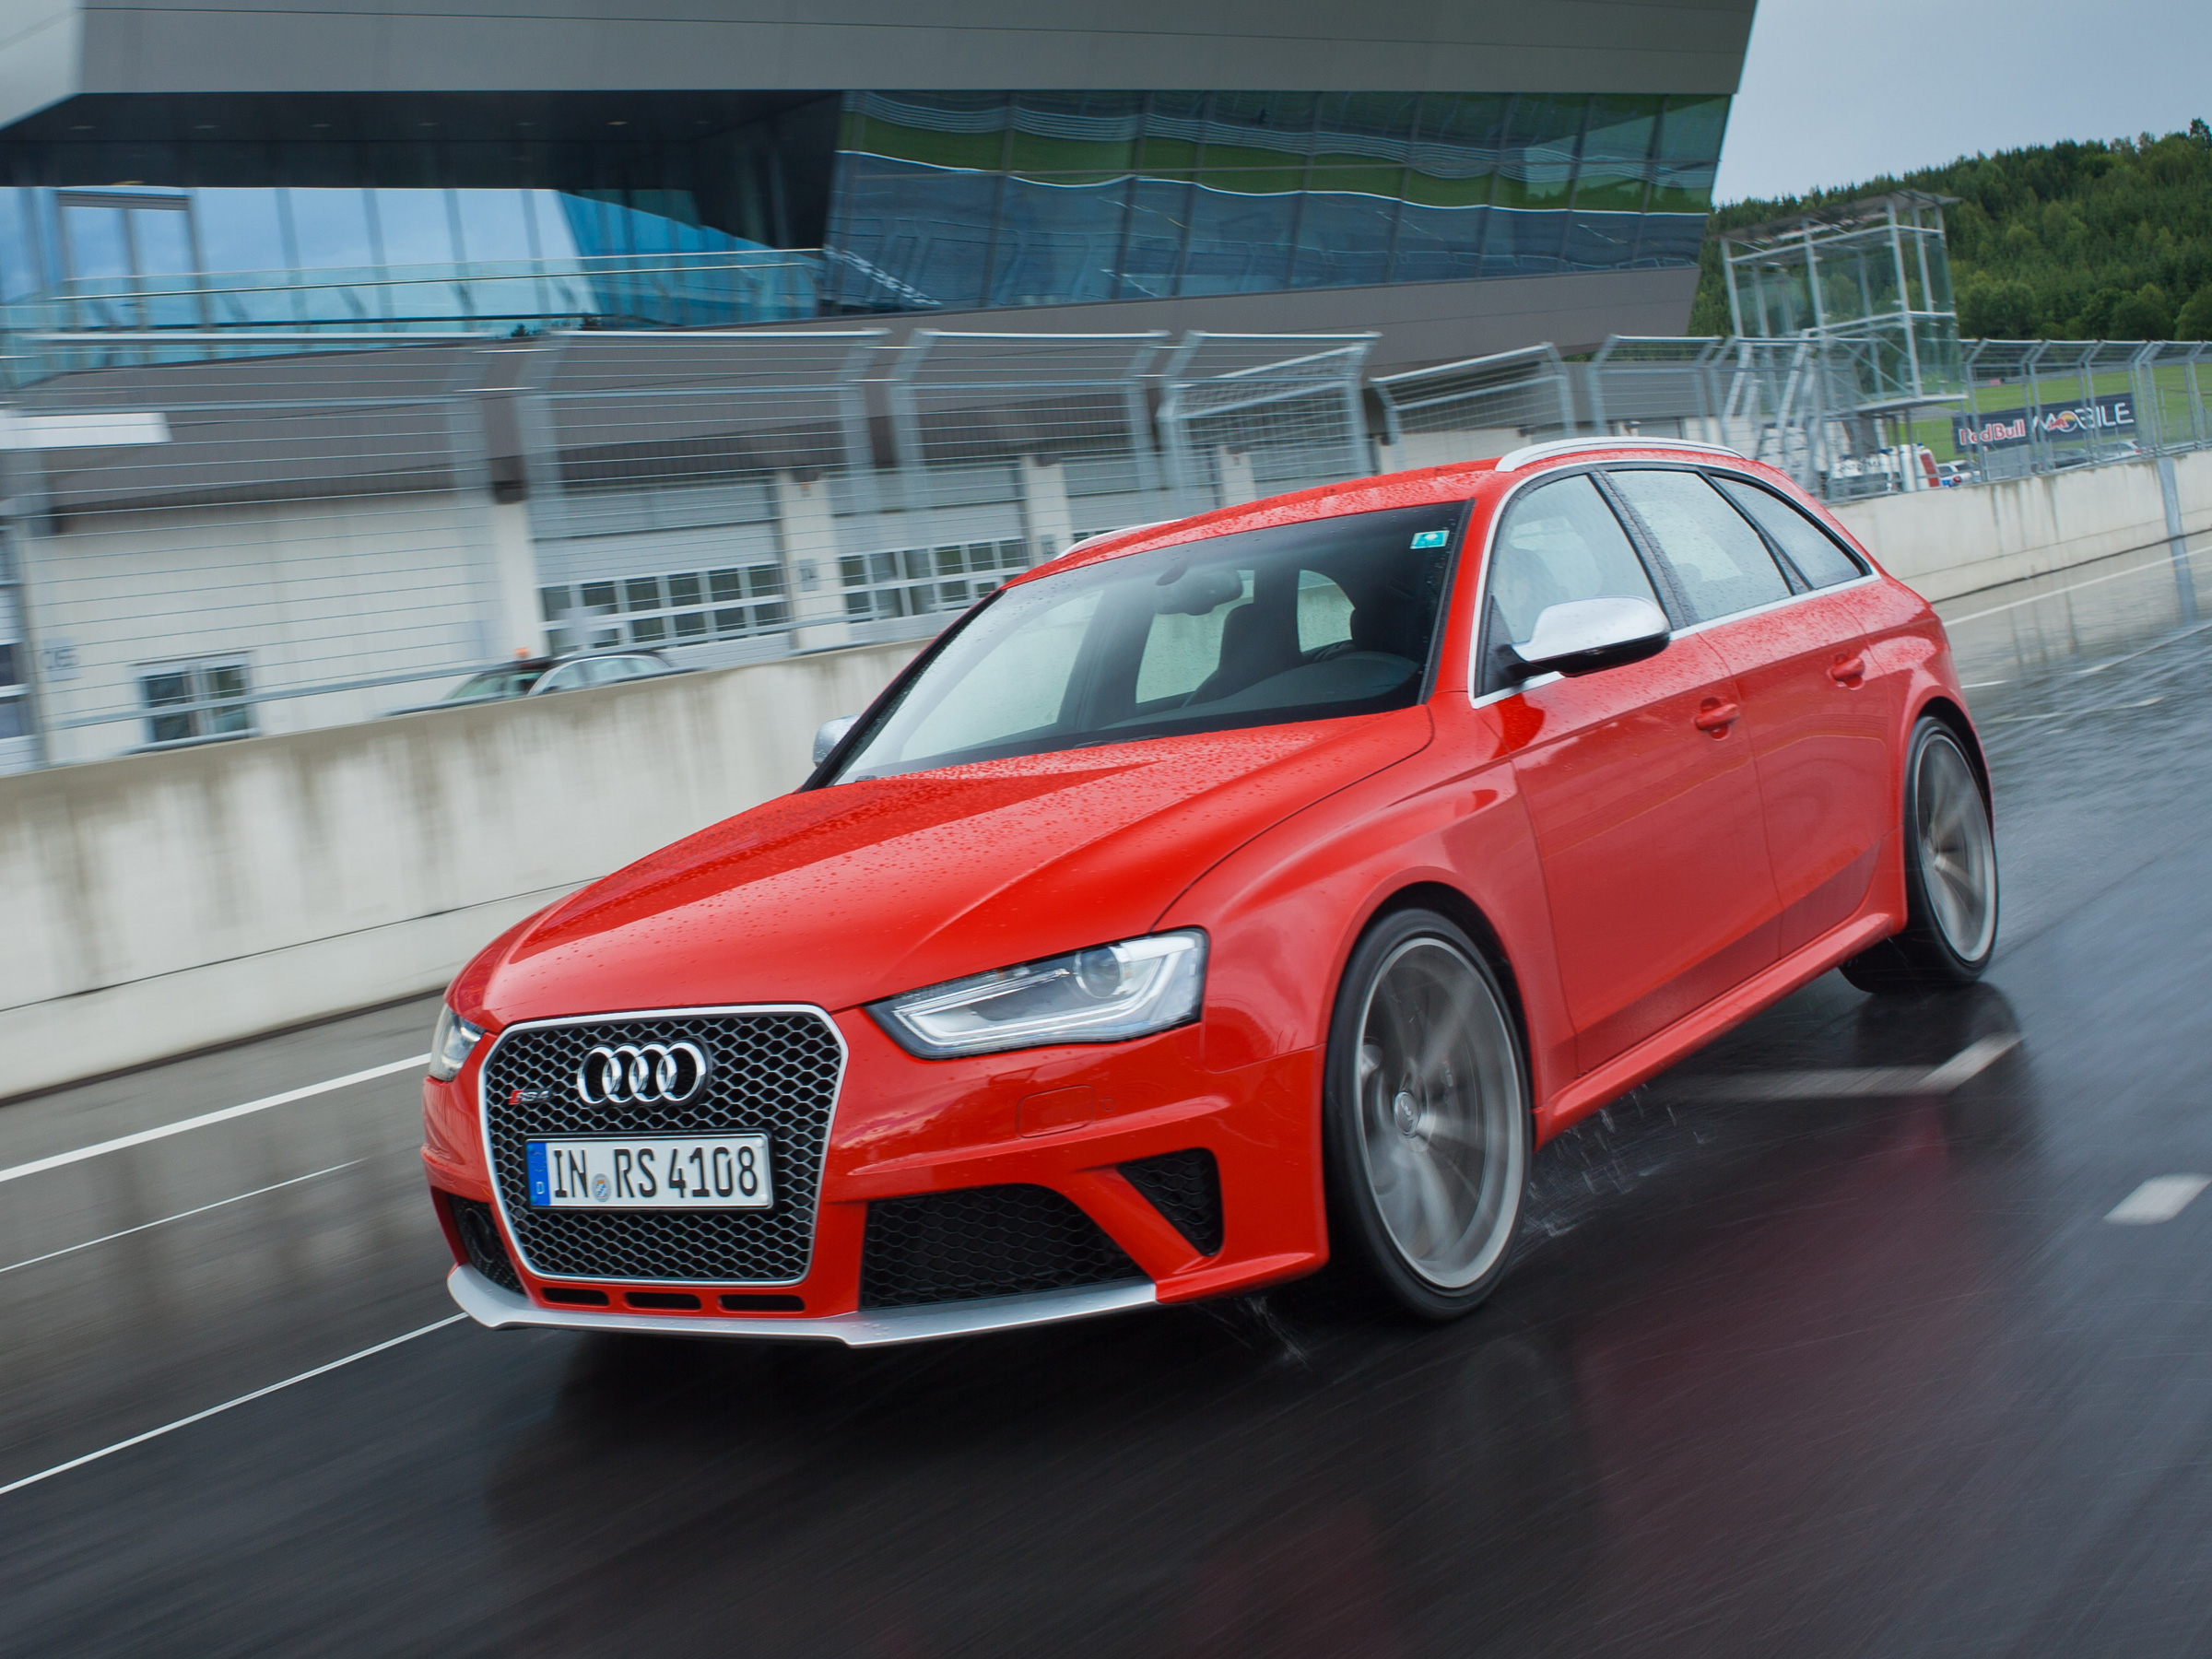 Find Used Audi Rs4 Avant Cars For Sale On Auto Trader Uk